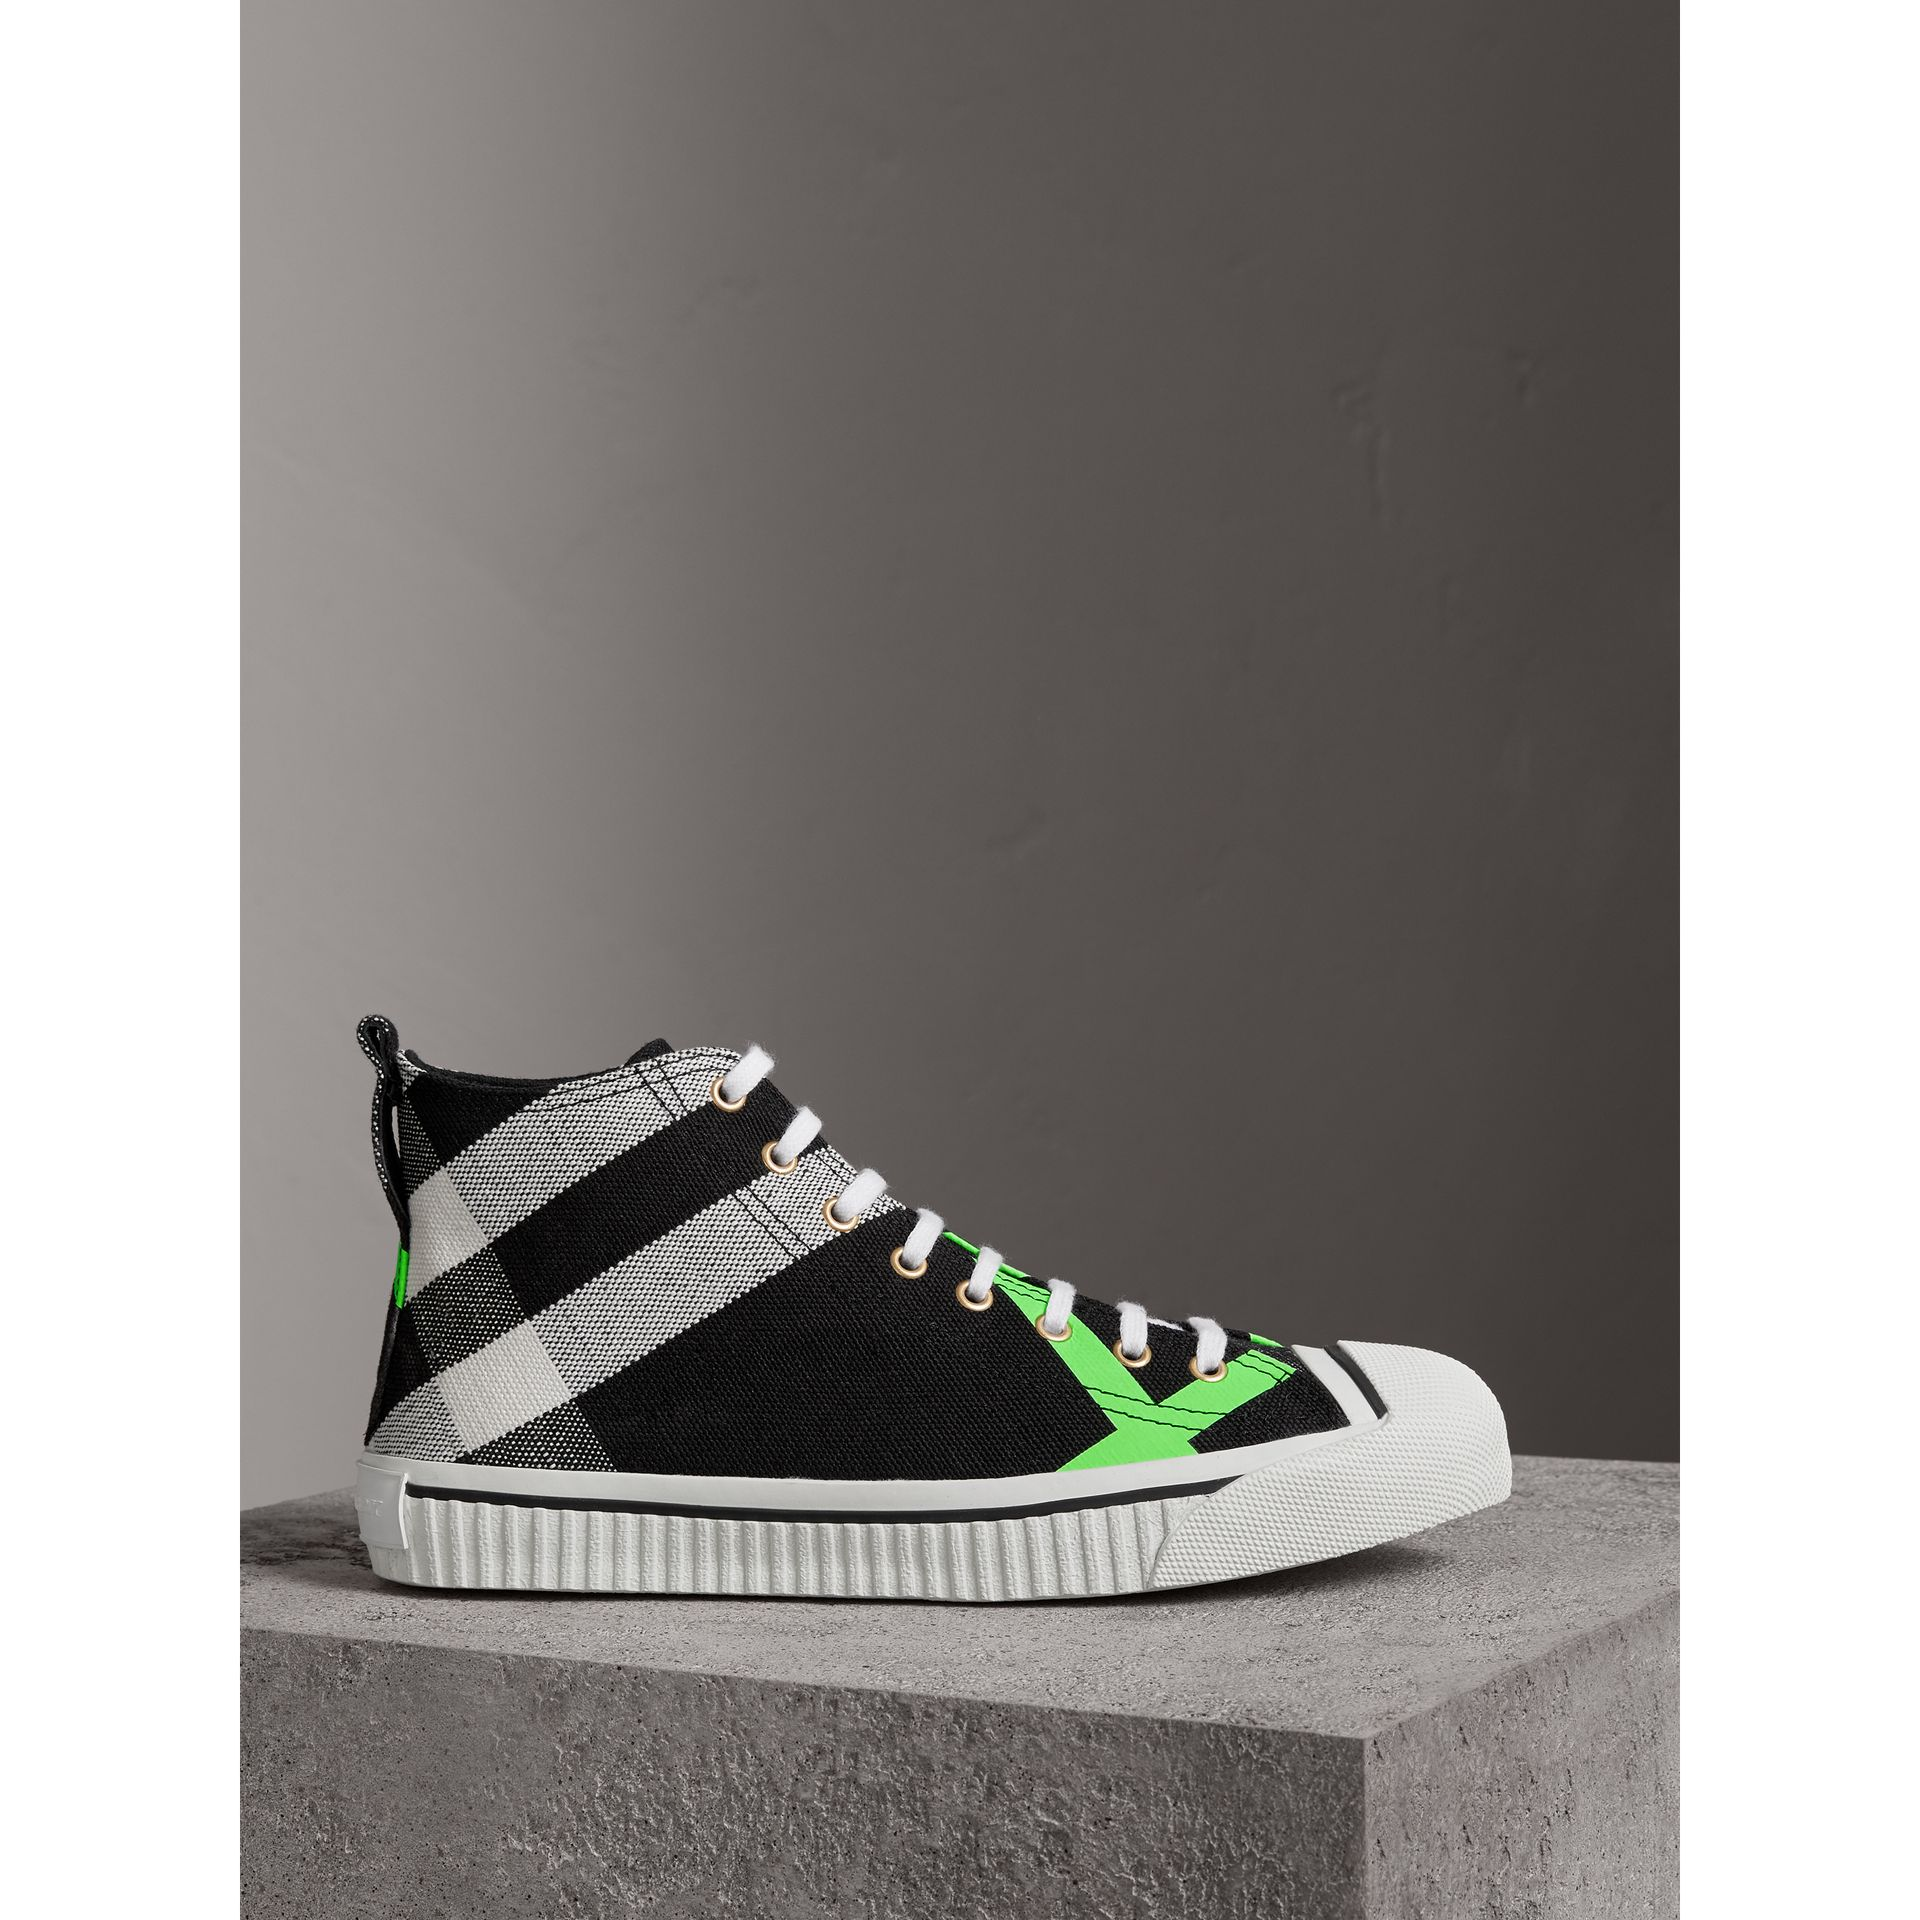 Burberry Black/Neon Green Canvas Check and Leather High-top Sneakers